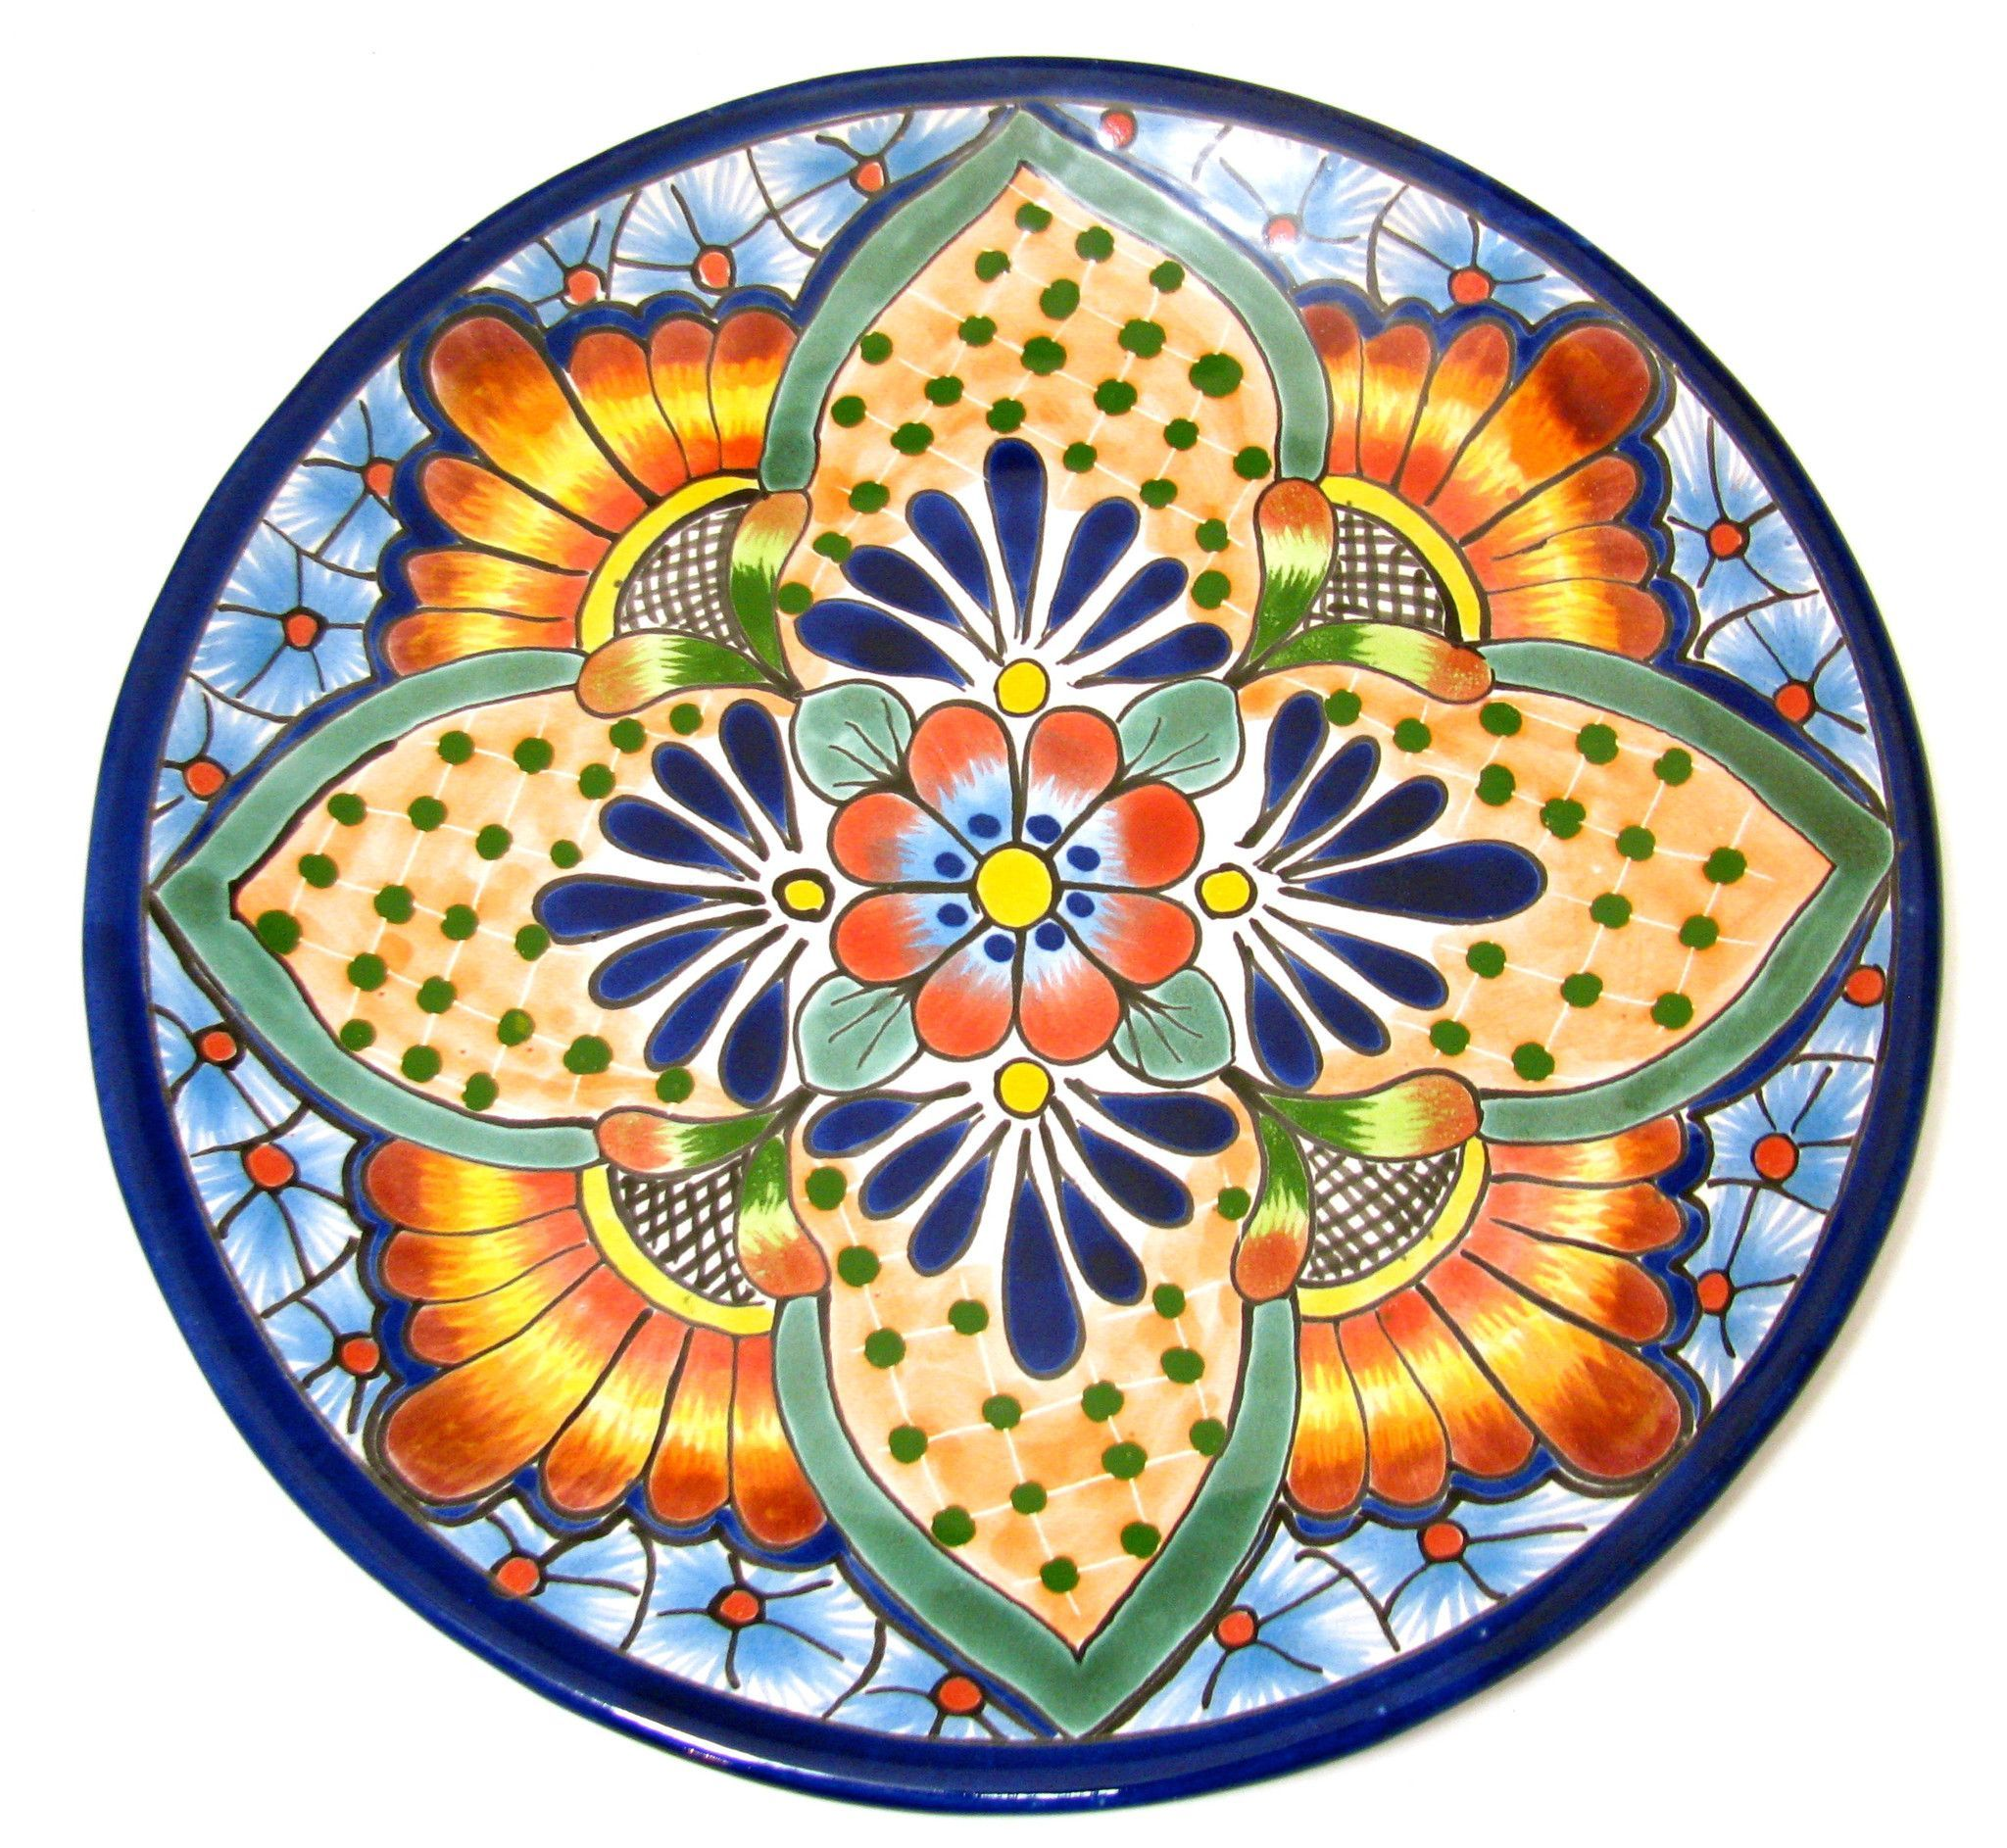 Talavera Plate Hand Painted Measures 12 Weights 3 Lbs Made In Mexico Size And Color May Vary